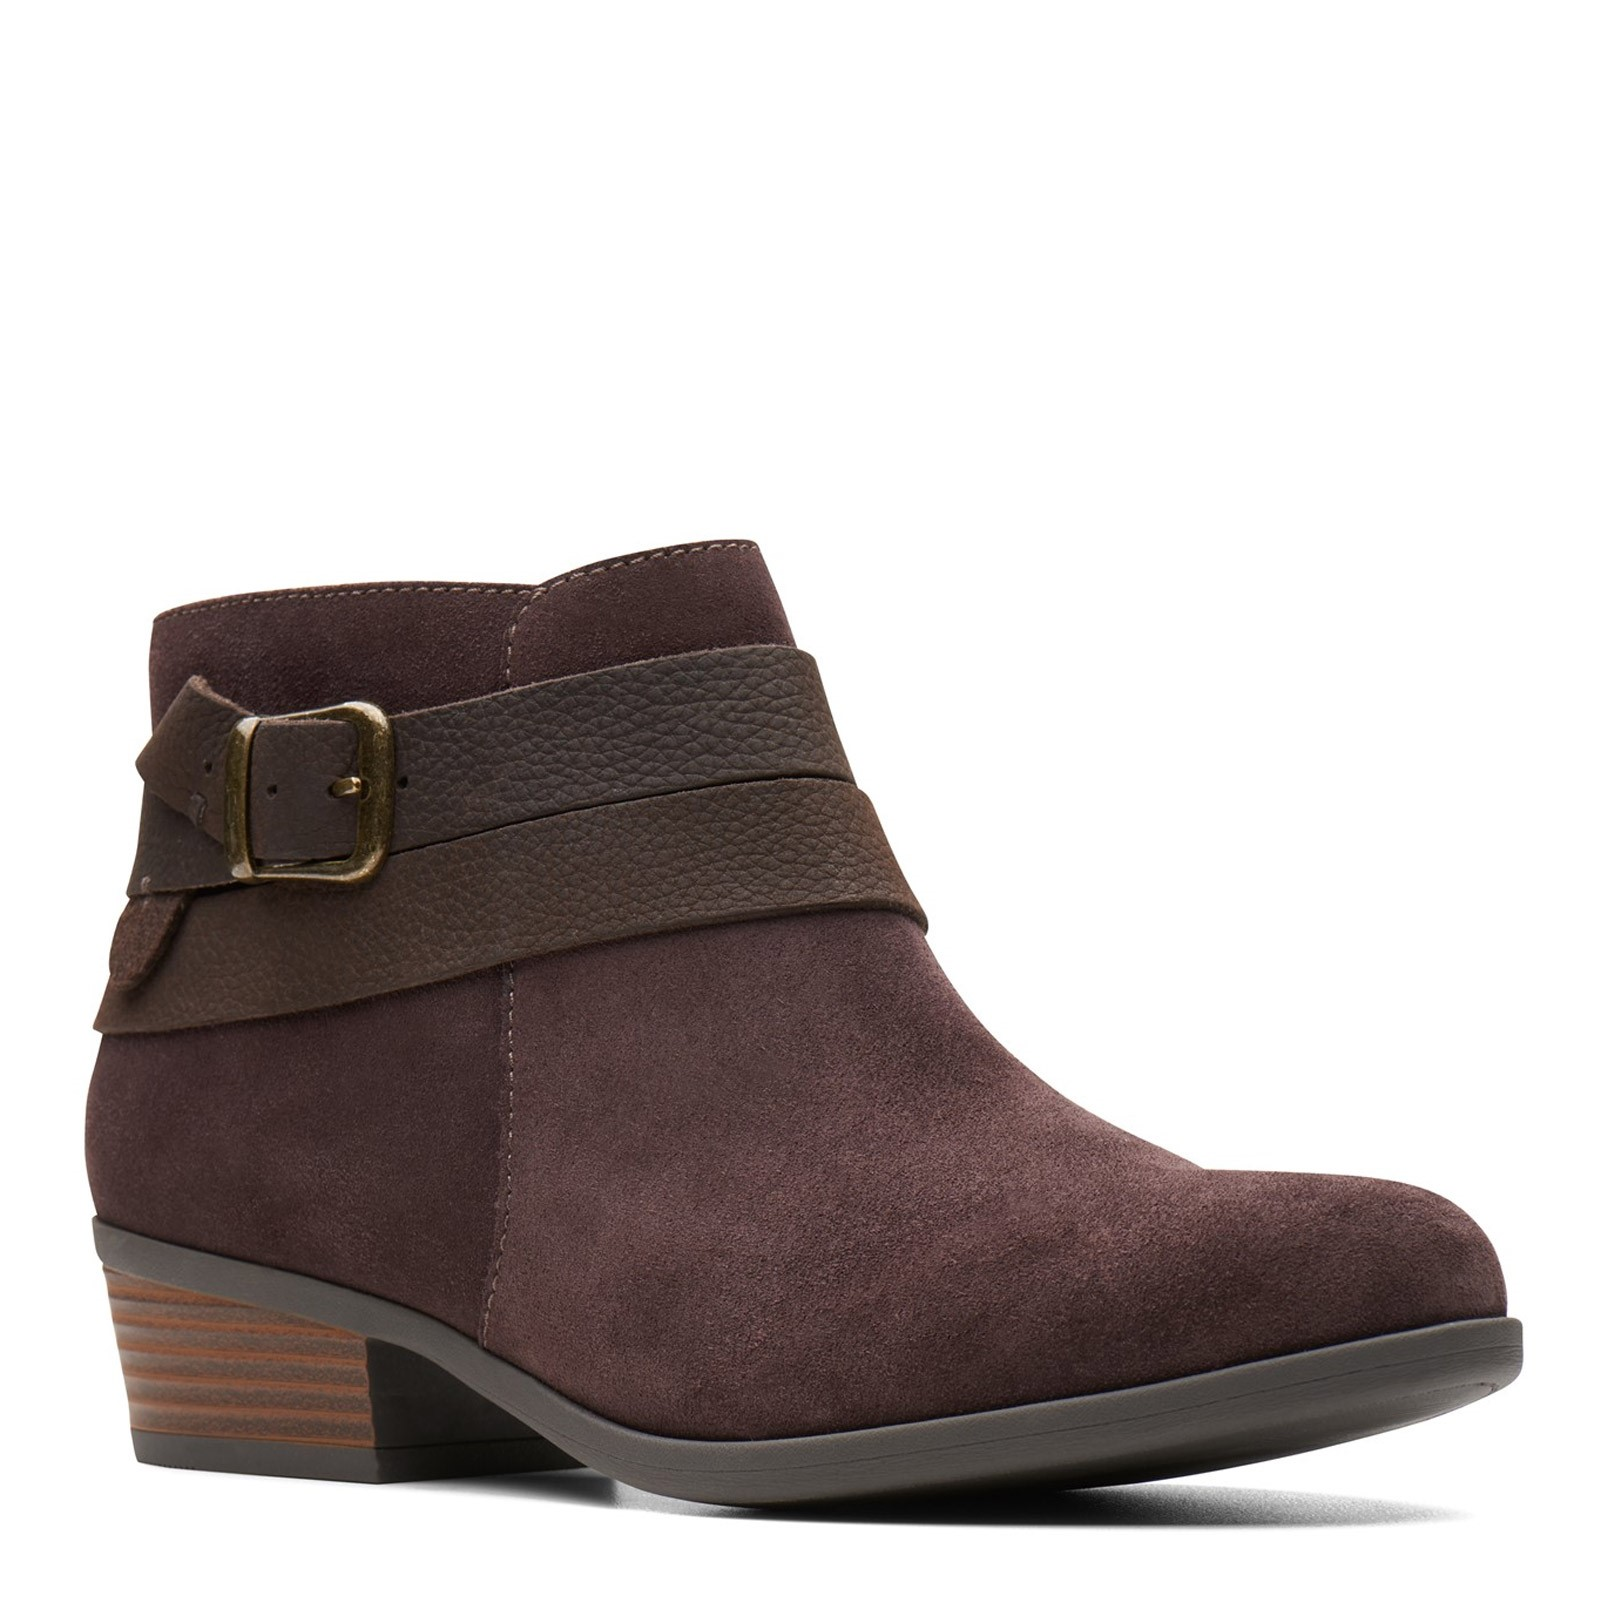 Women's Clarks, Addiy Cora Ankle Boot